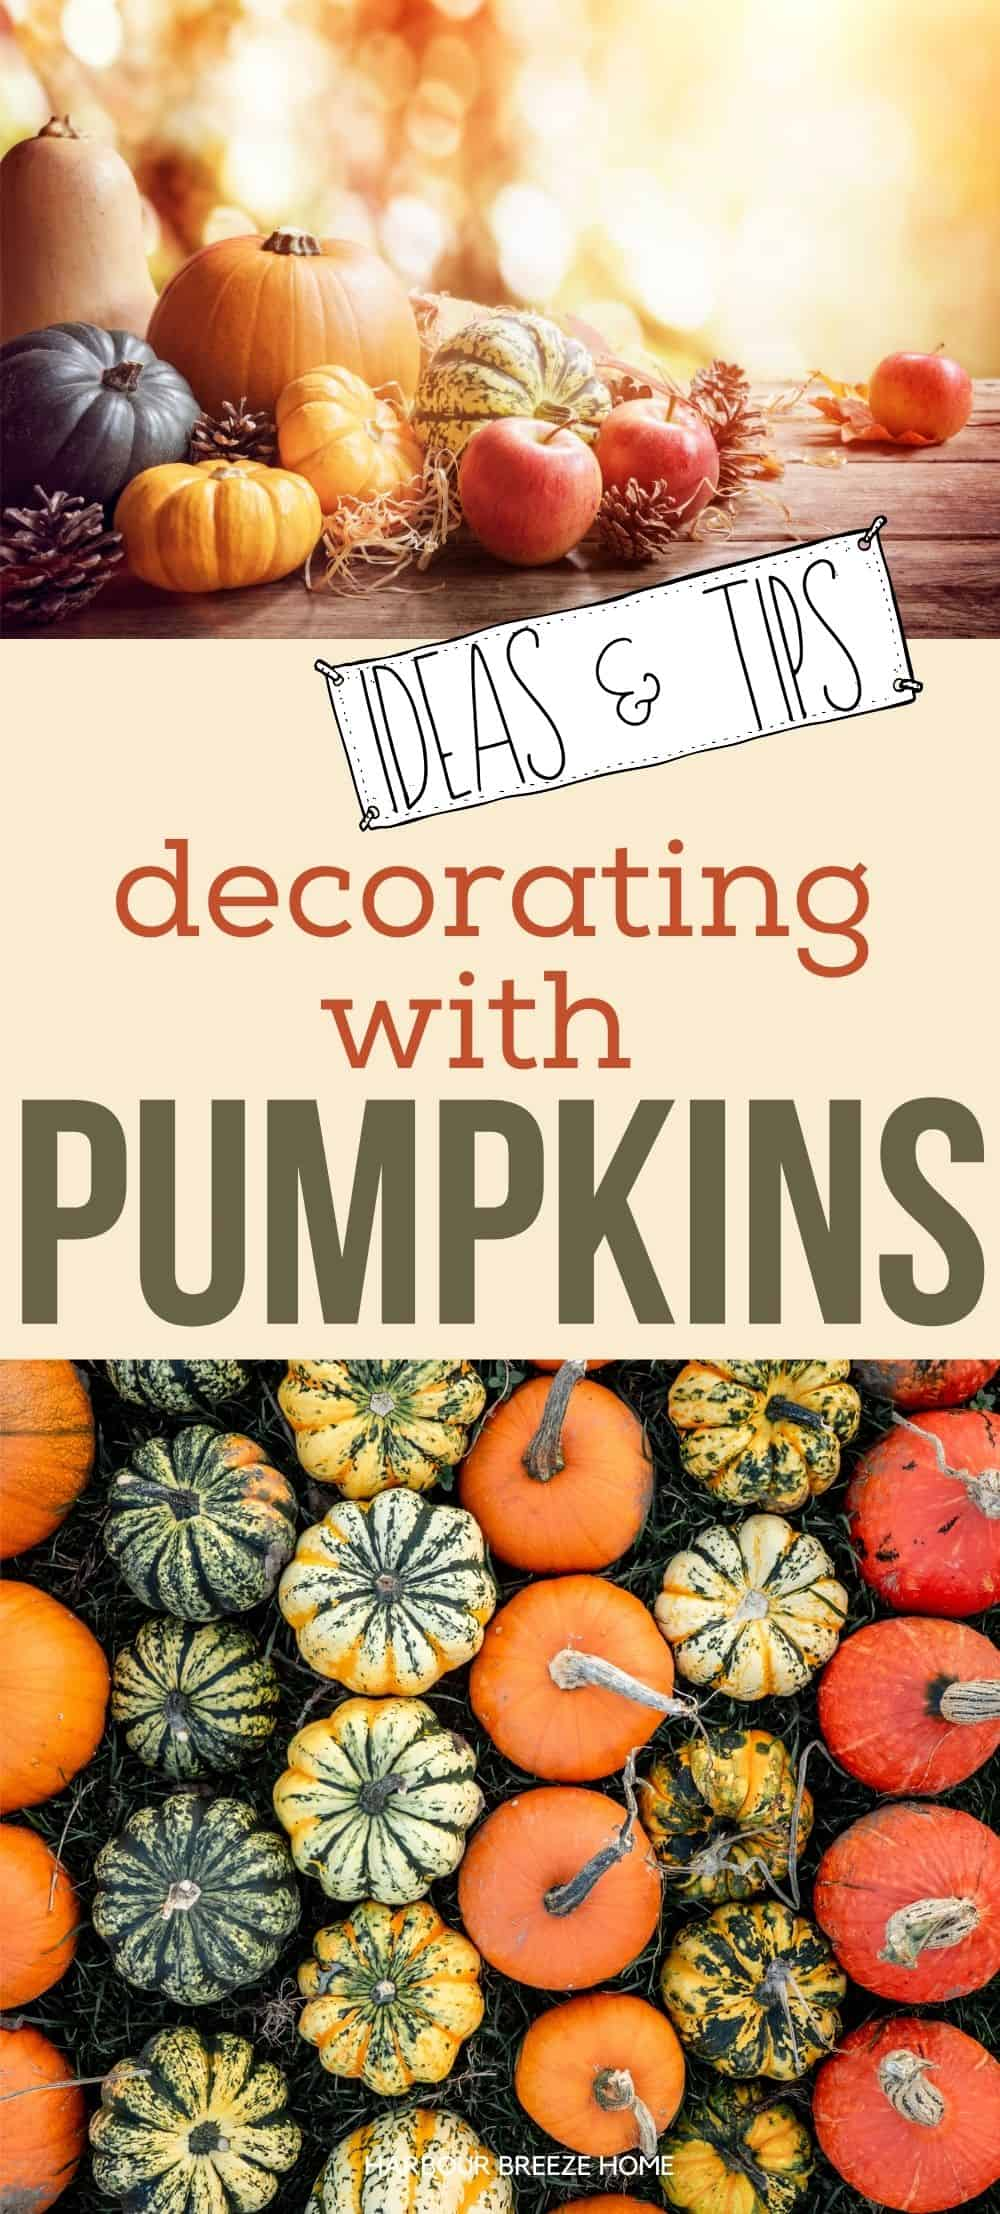 Decorating with pumpkins for Fall - Ideas, tips, & tricks